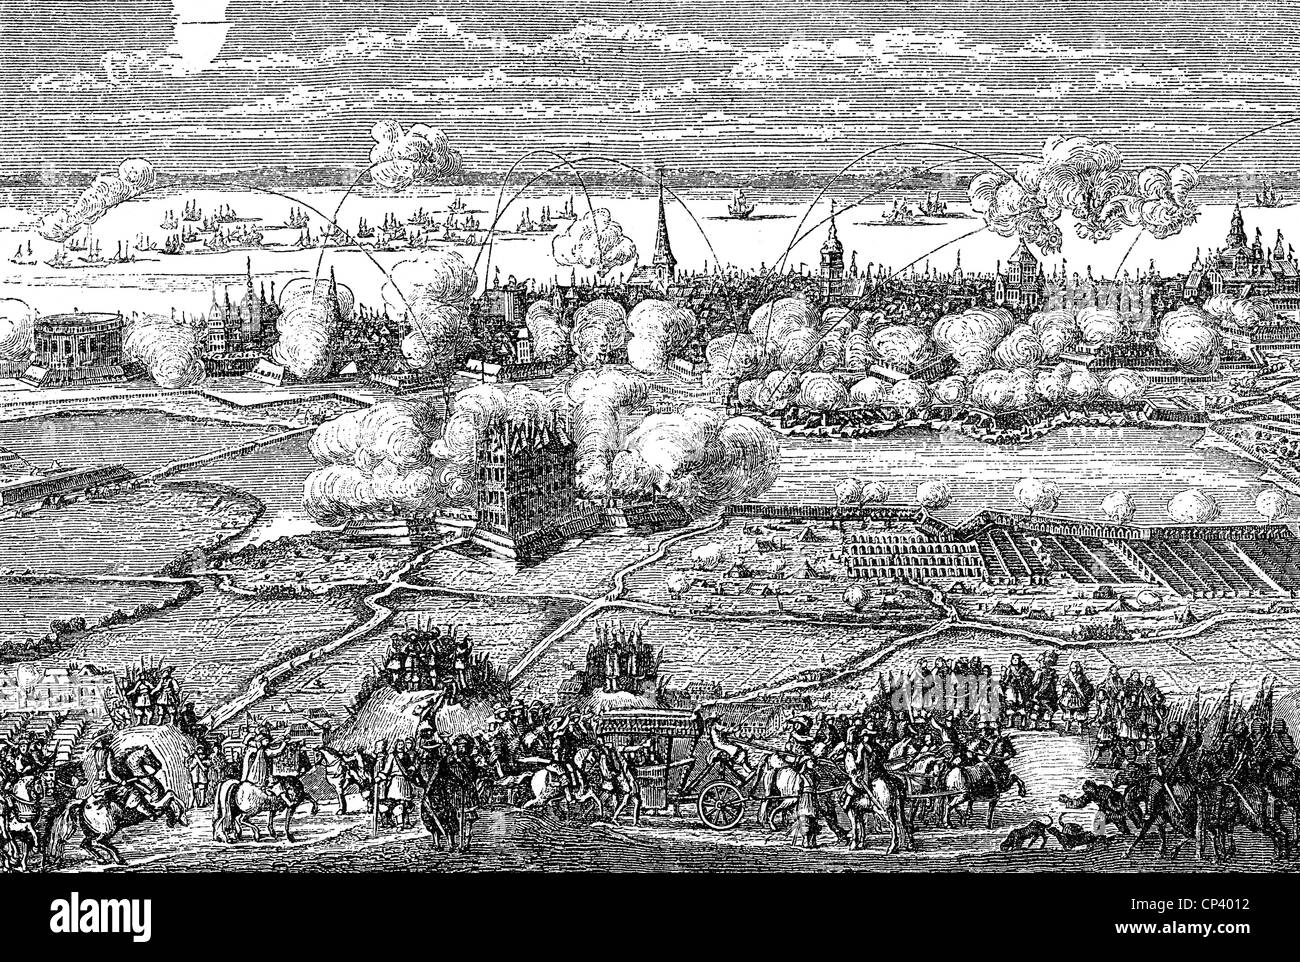 events, Second Northern War 1655 - 1661, Siege of Copenhagen 1658 - 1659, copper engraving, 2nd half 17th century, - Stock Image